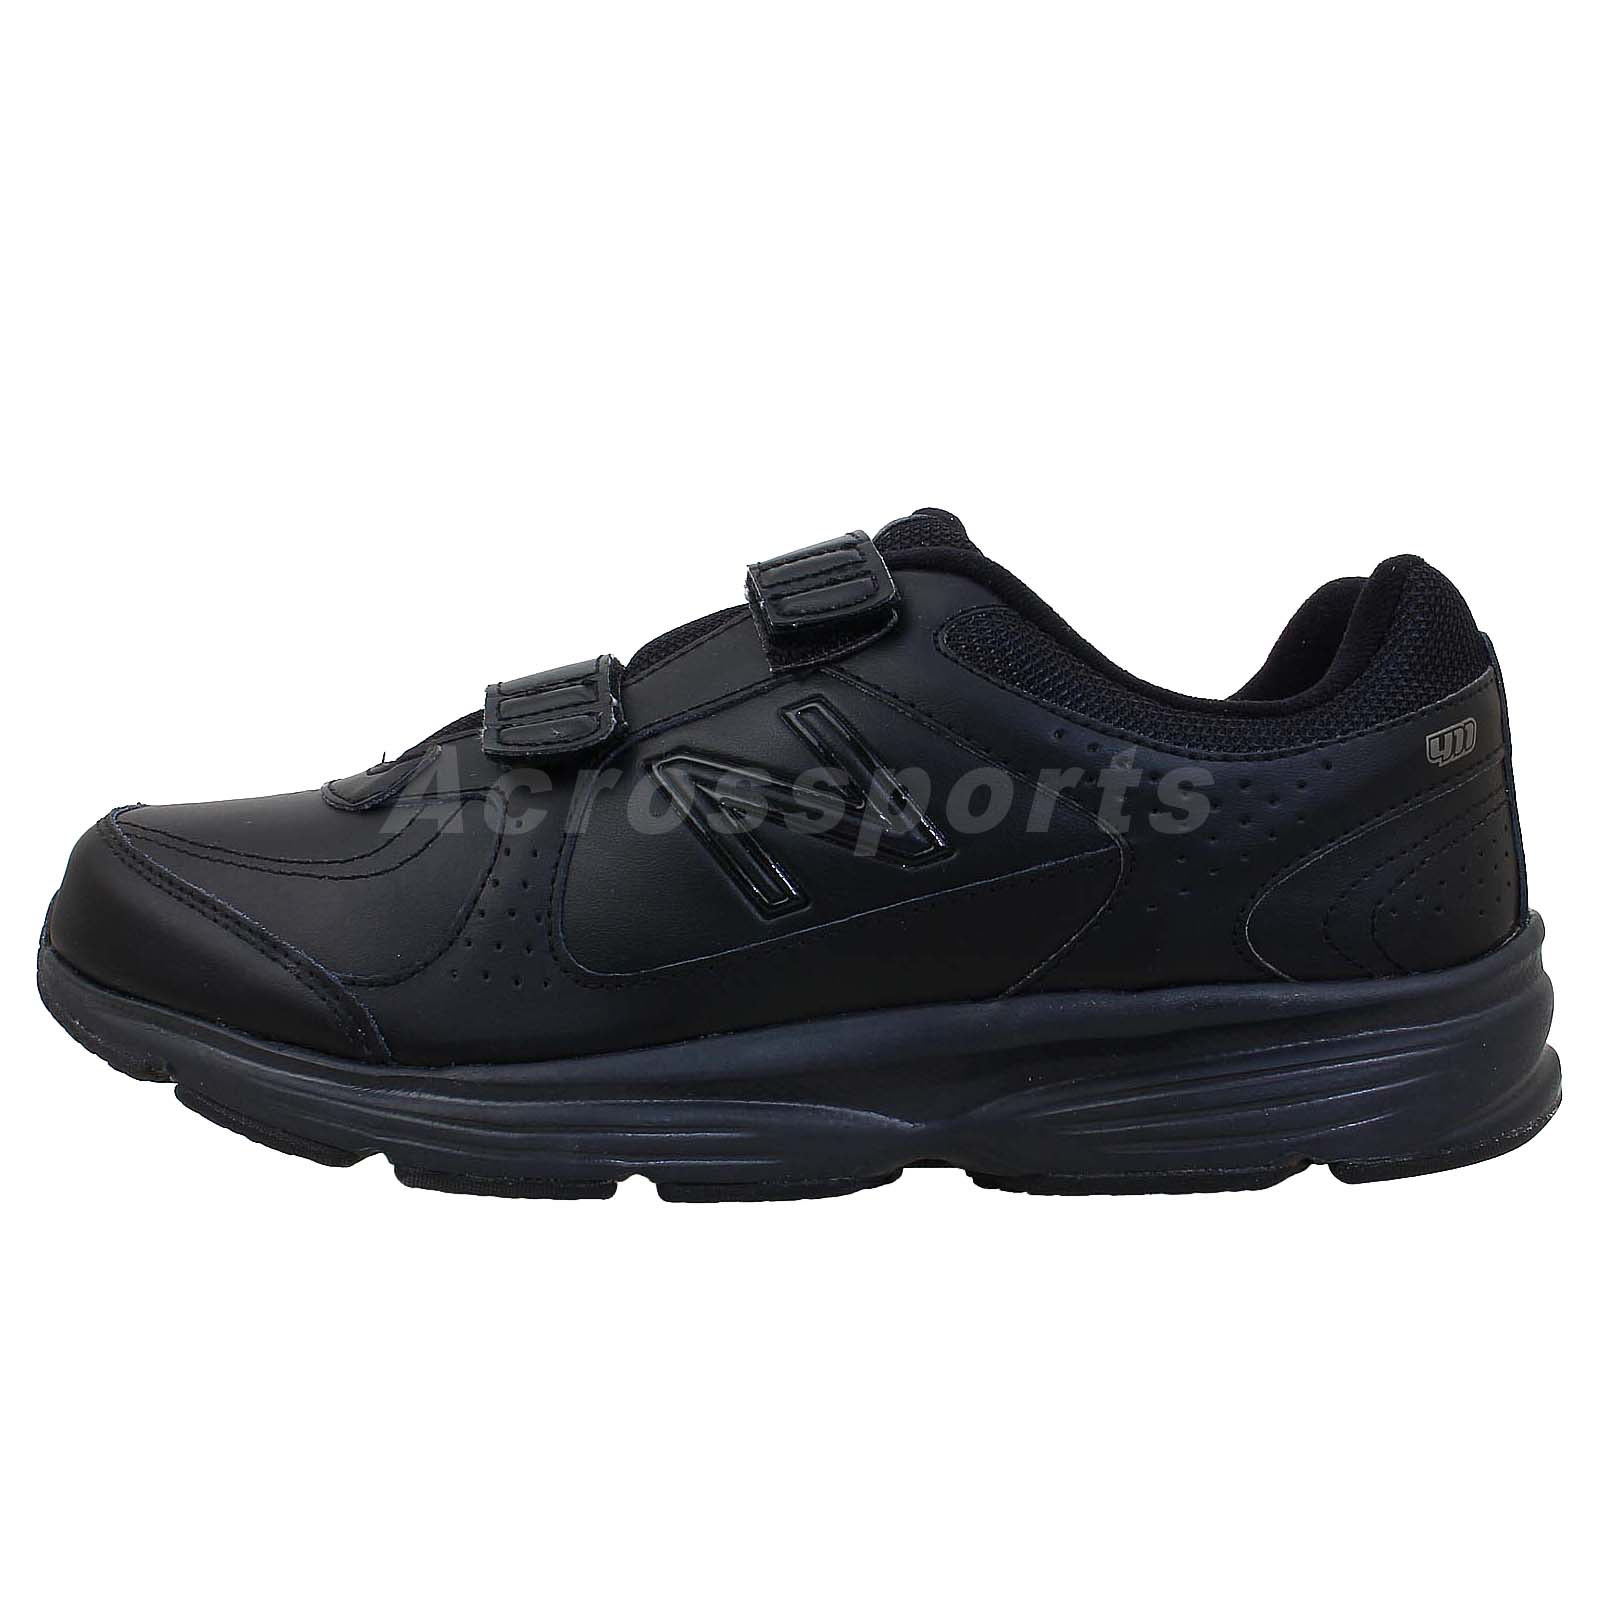 new balance mw411hbk 2e black out velcro 2013 mens walking